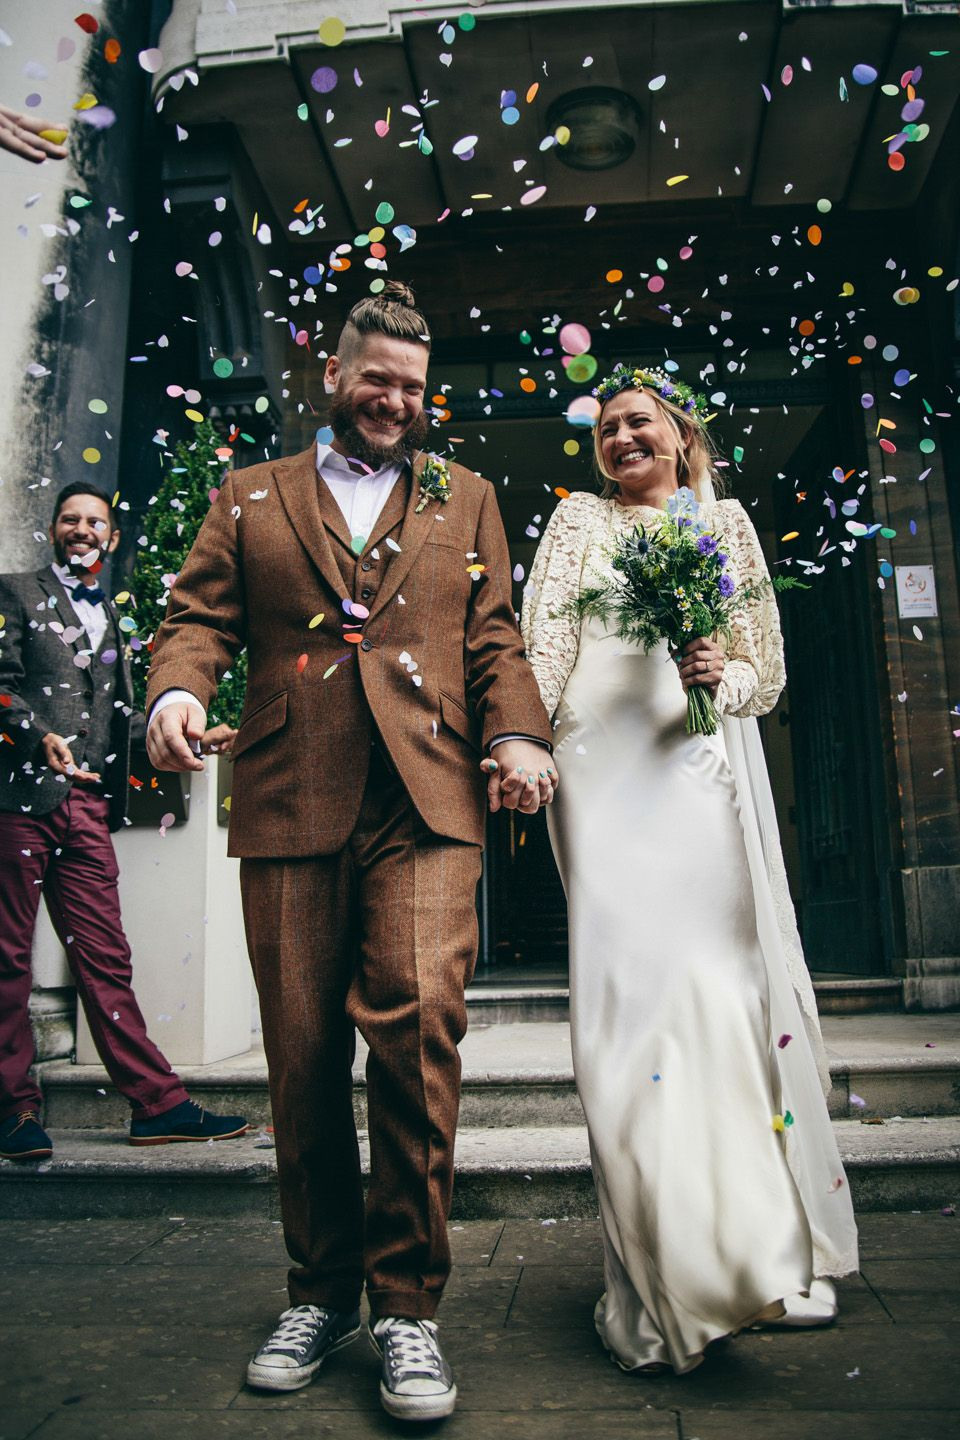 Best affordable wedding dress shops london  A us Wedding Dress For A Quirky and Vintage Inspired London Pub